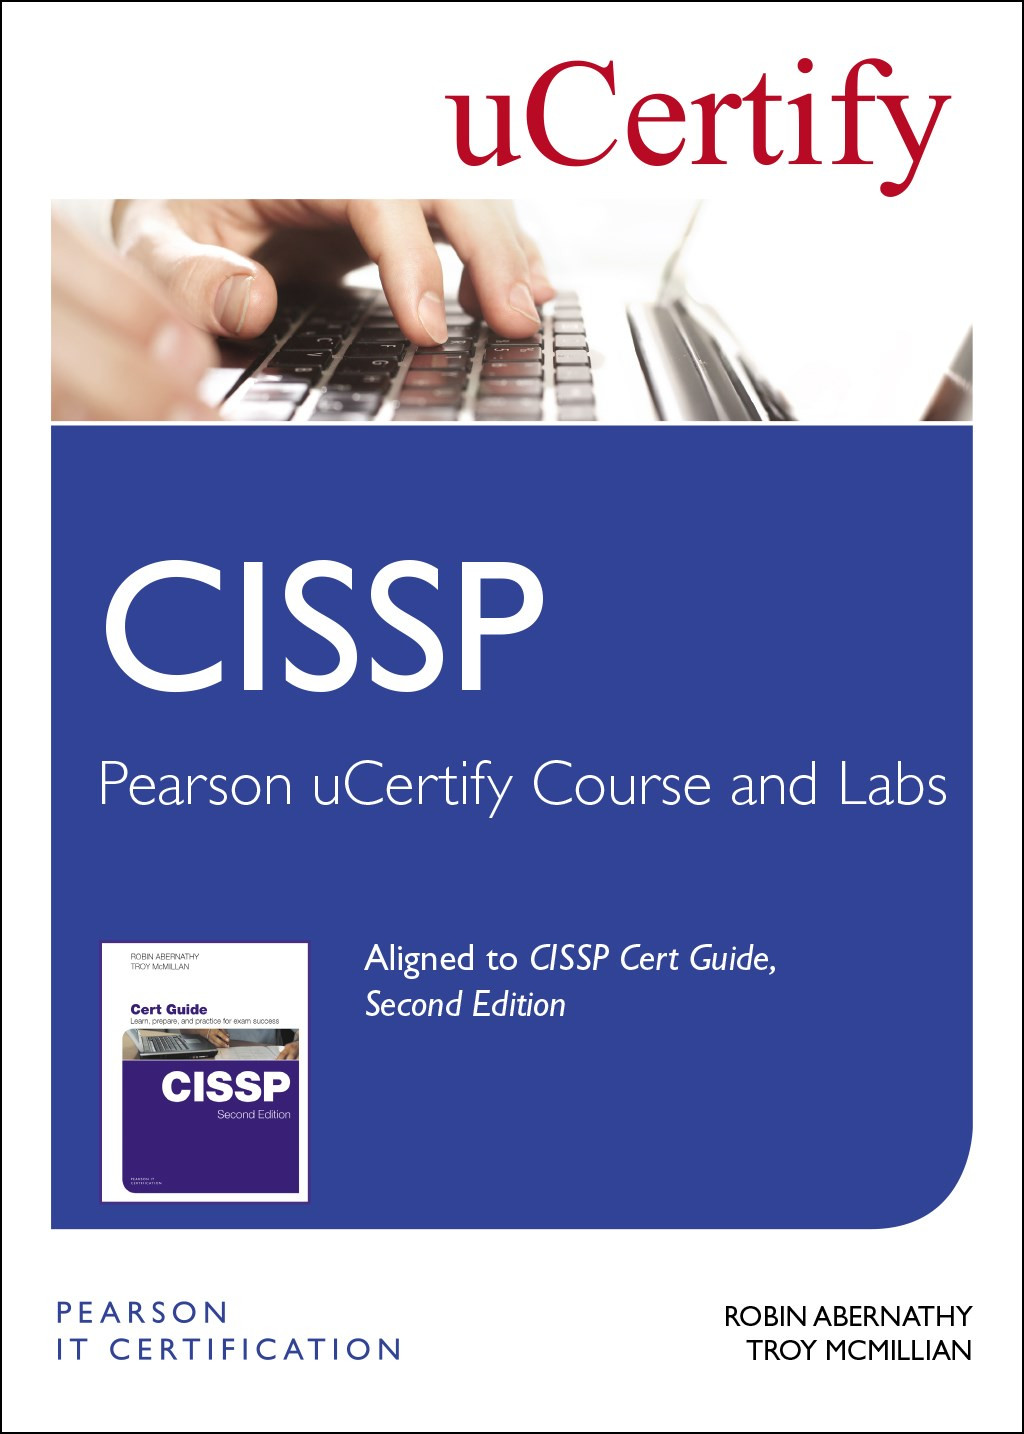 CISSP Pearson uCertify Course and Labs